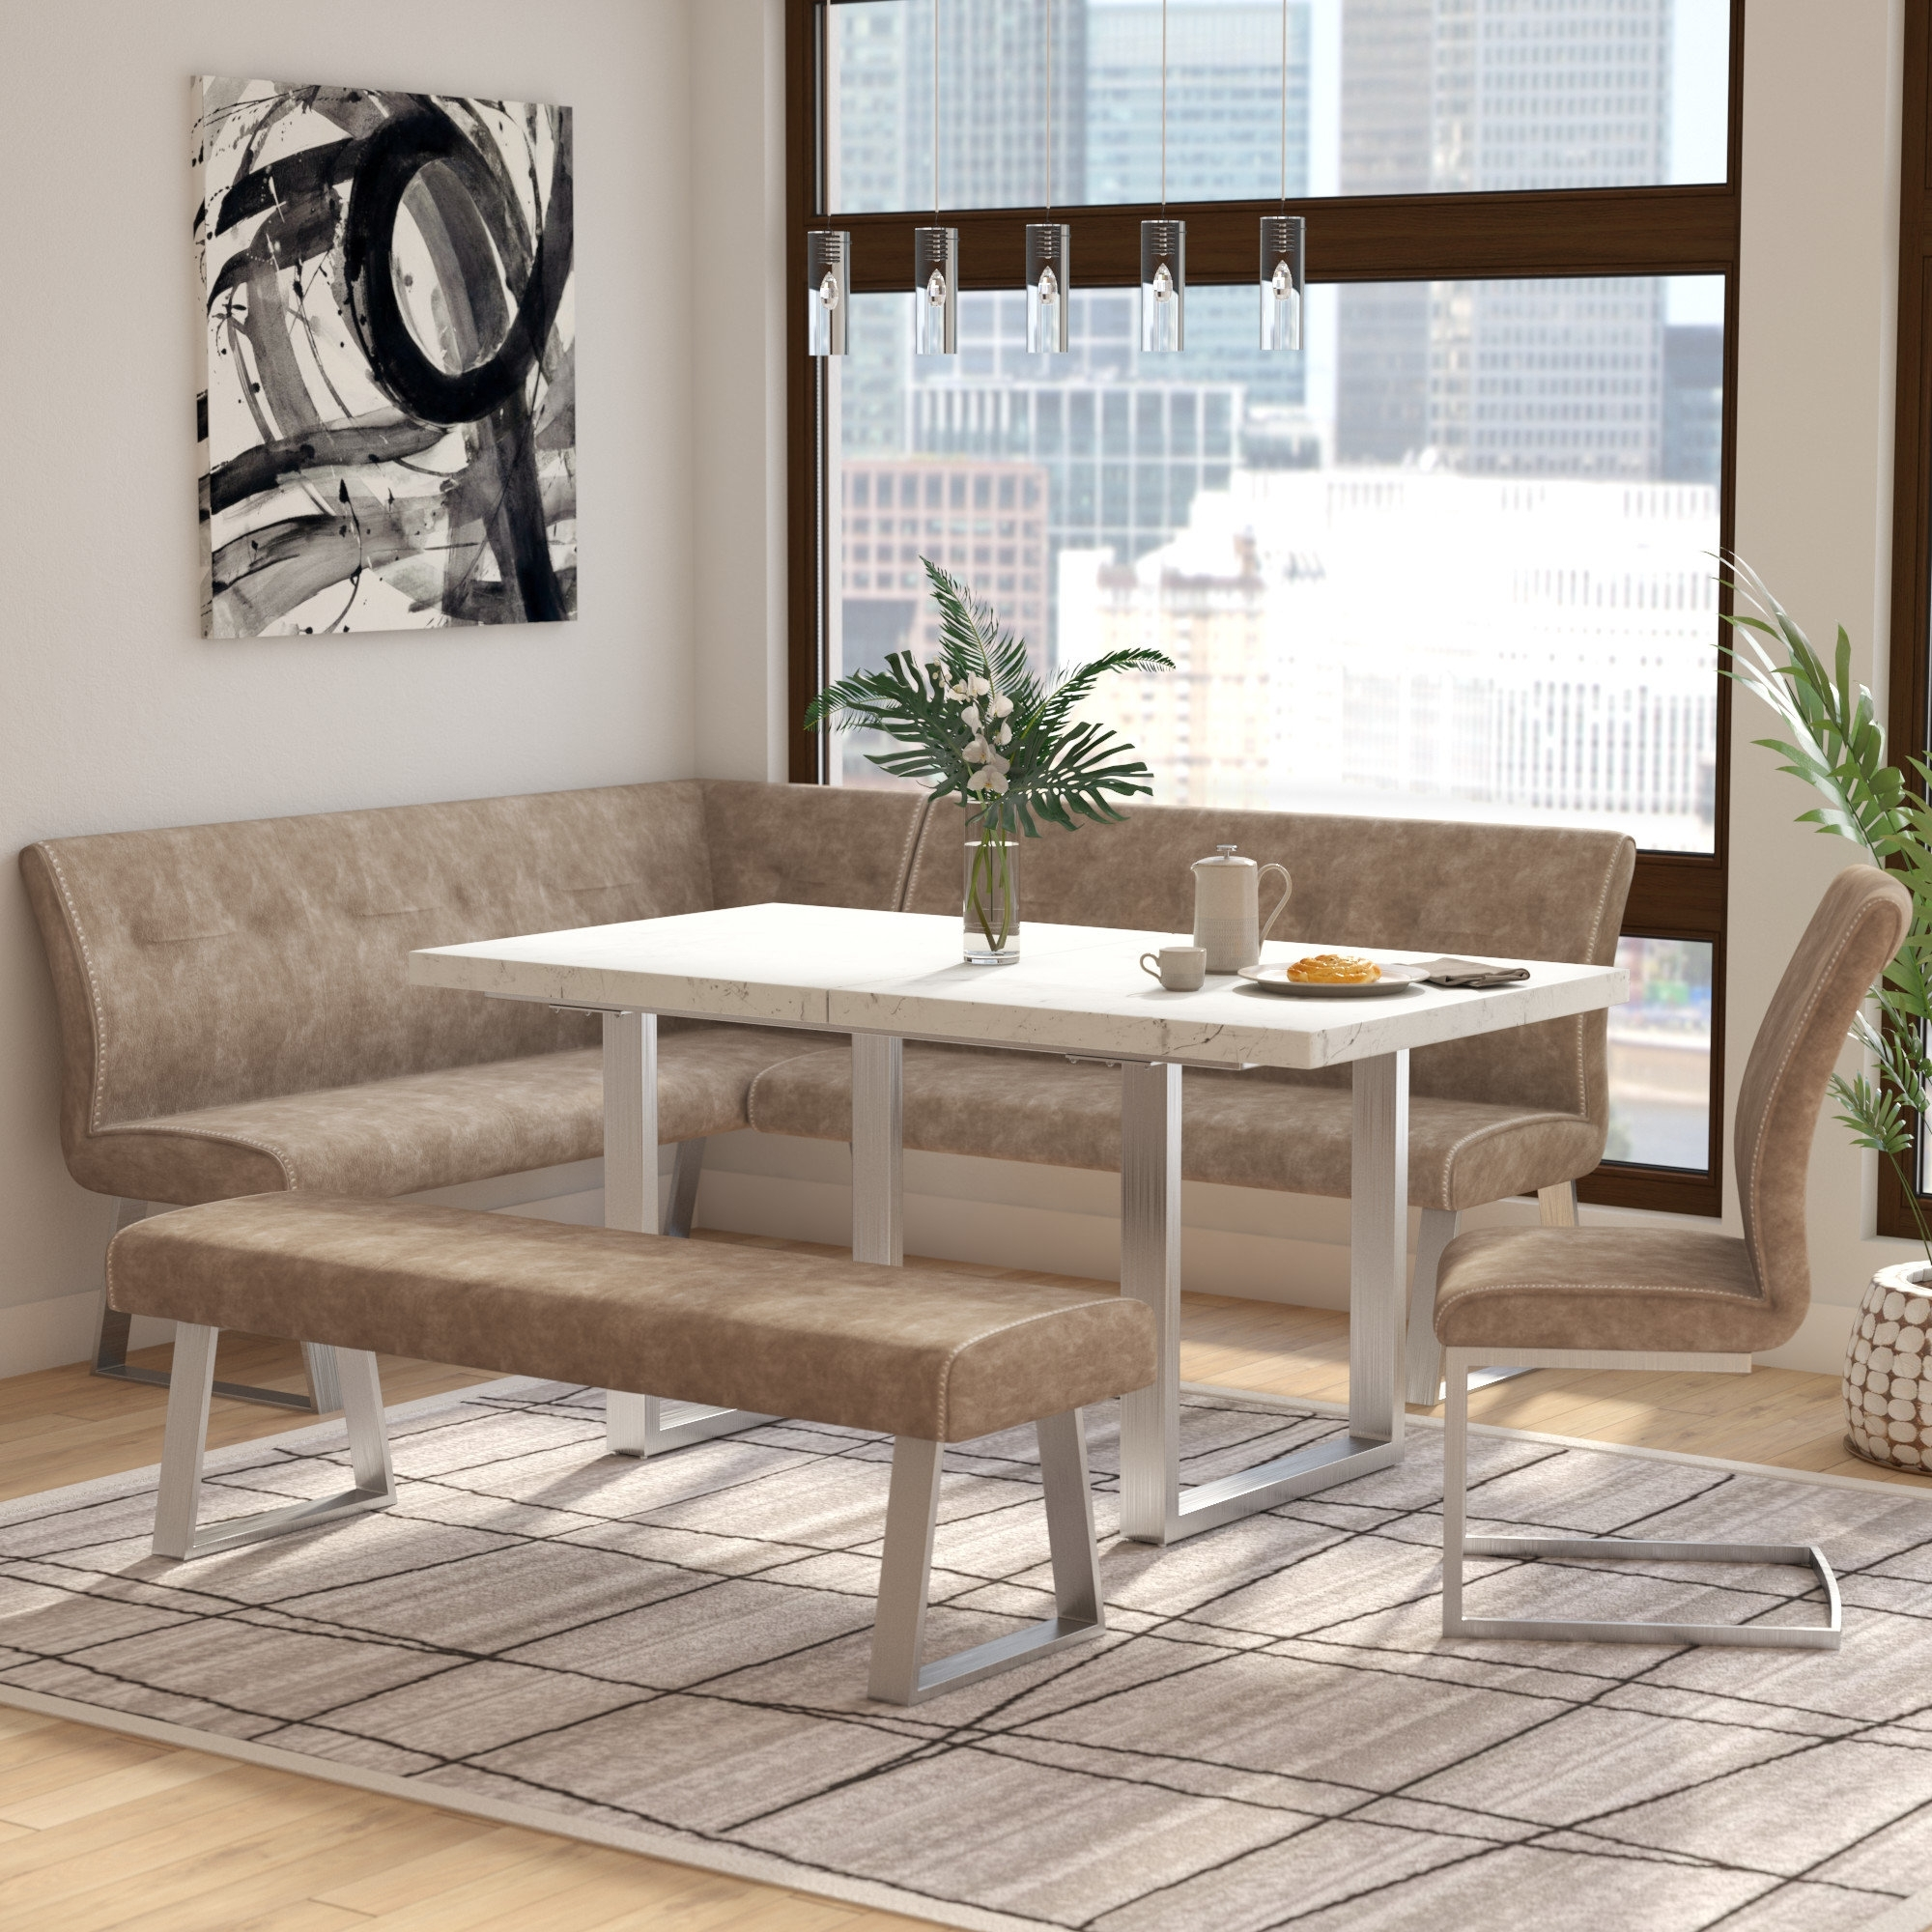 Wayfair Intended For Logan 6 Piece Dining Sets (View 13 of 25)